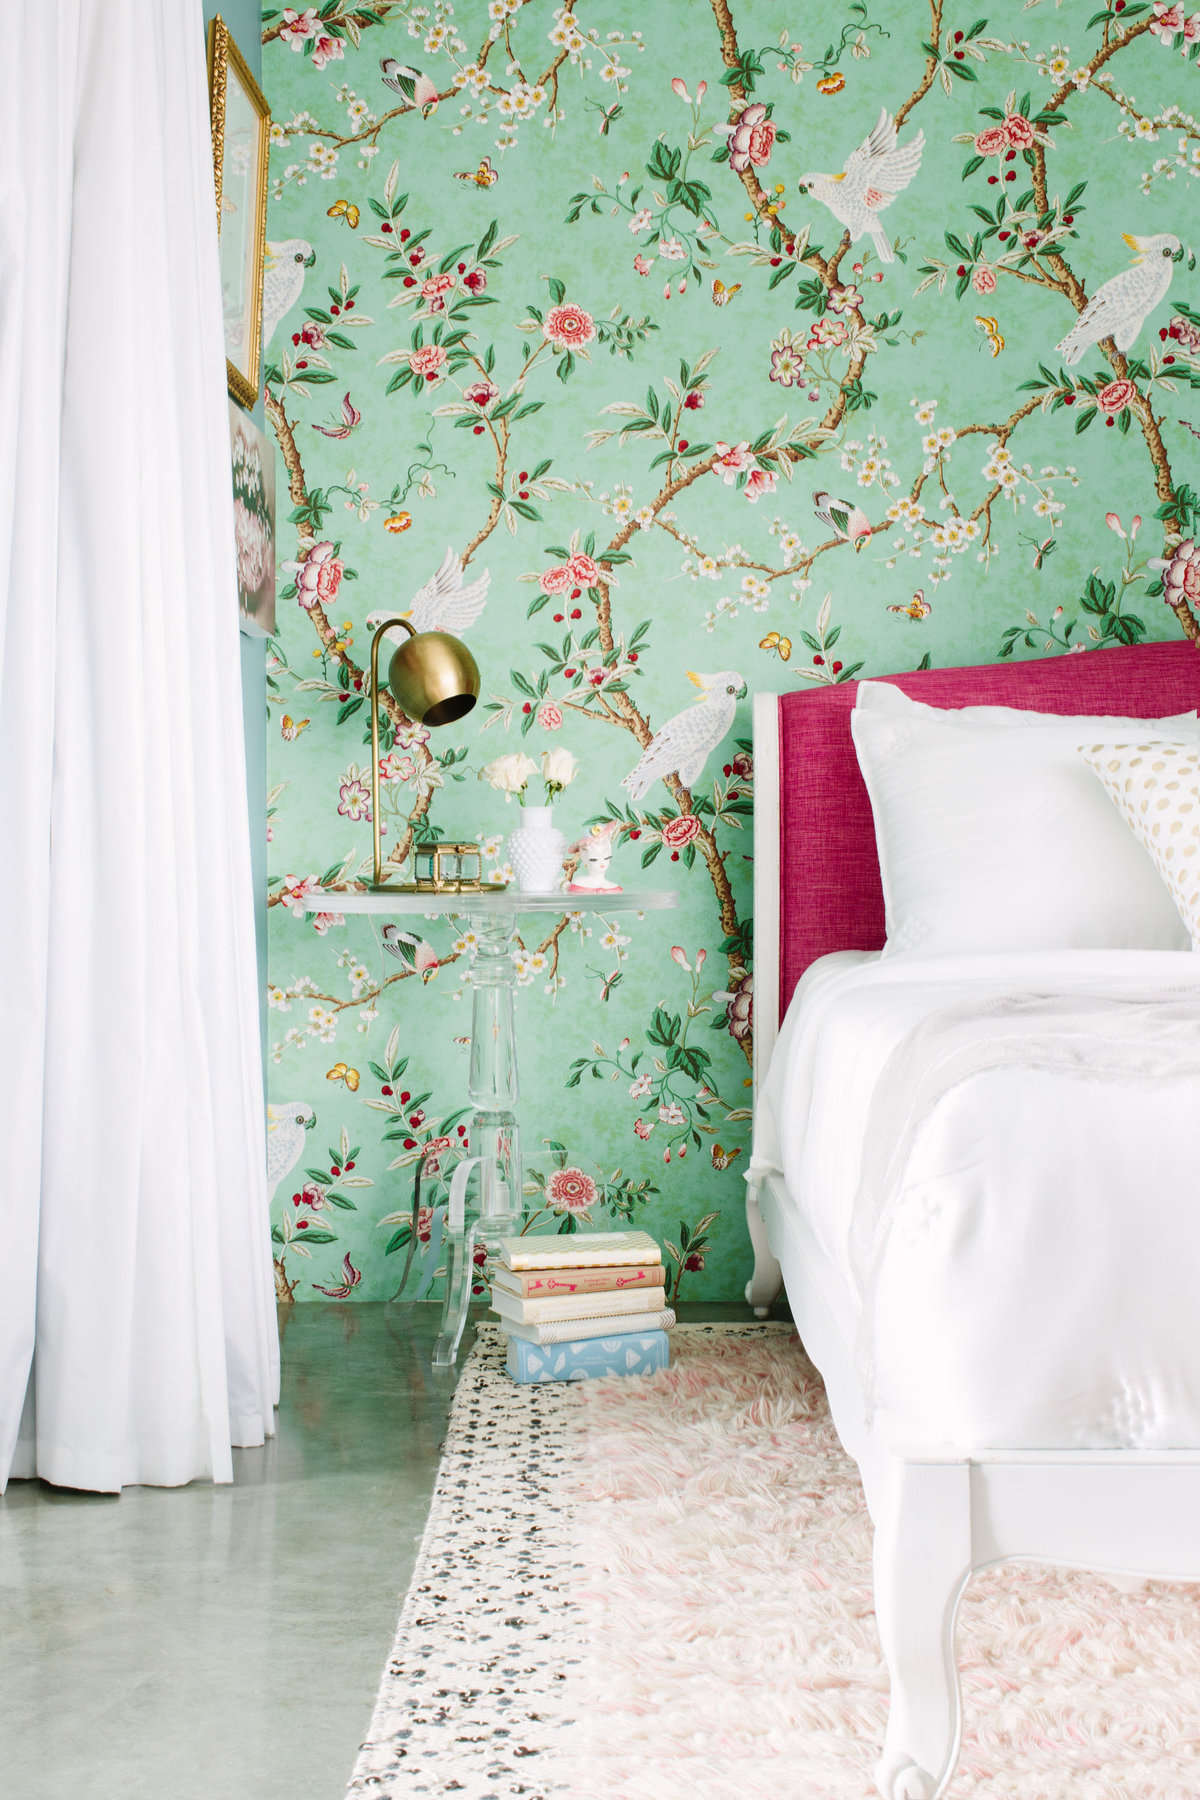 Floral chinoiserie wallpaper bedroom with pink headboard